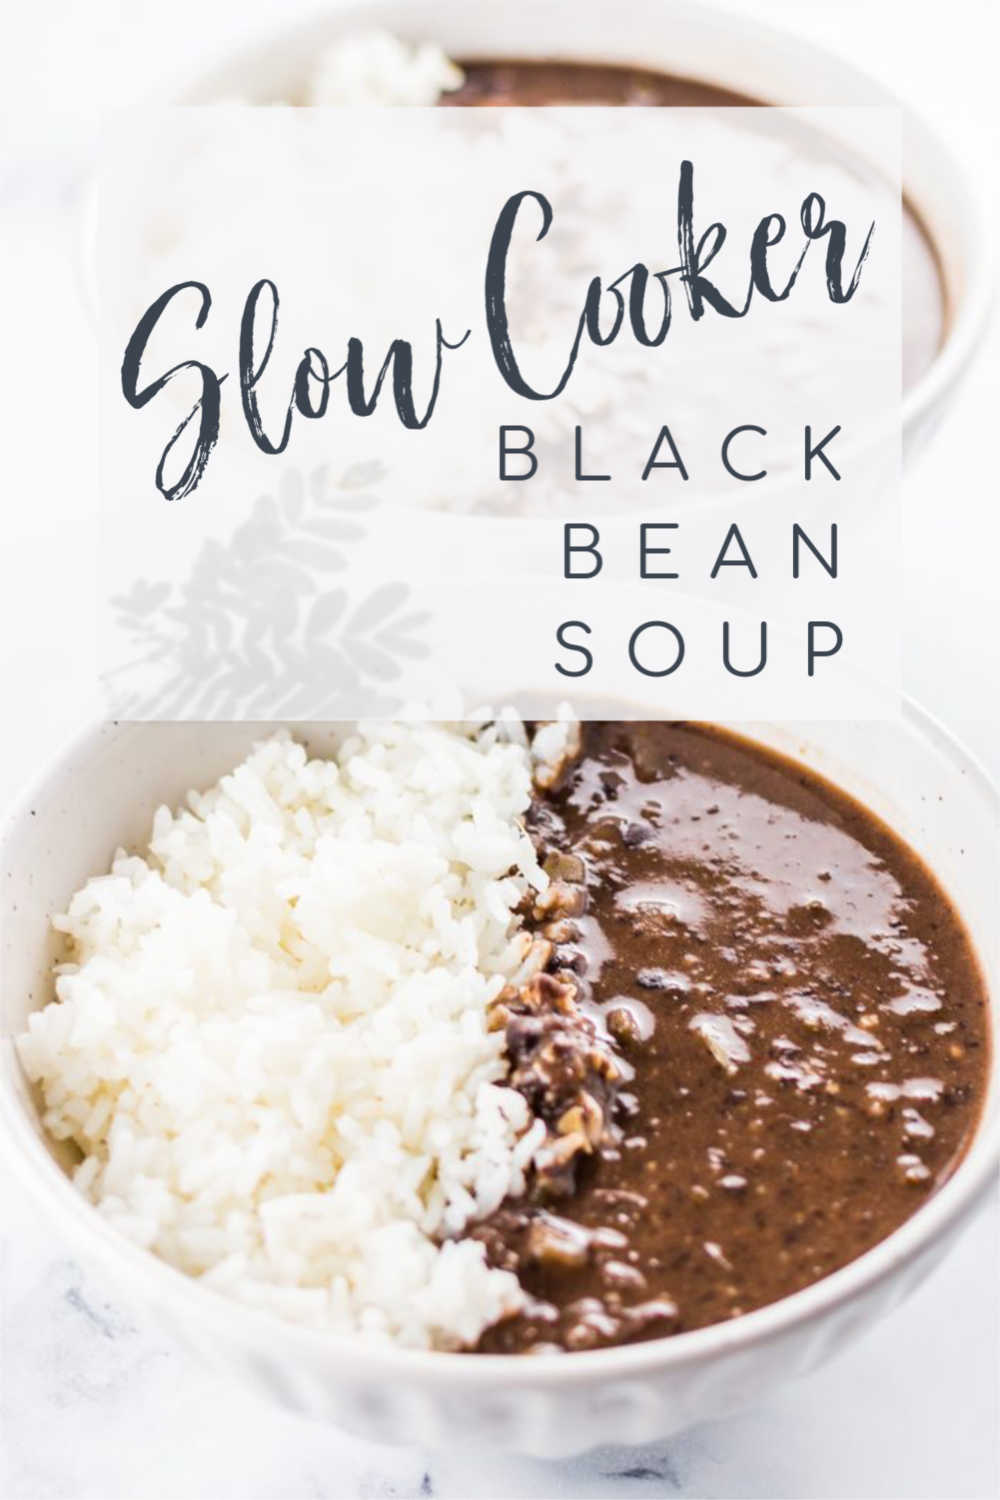 How to Make the Easiest Vegetarian Crockpot Black Bean Soup